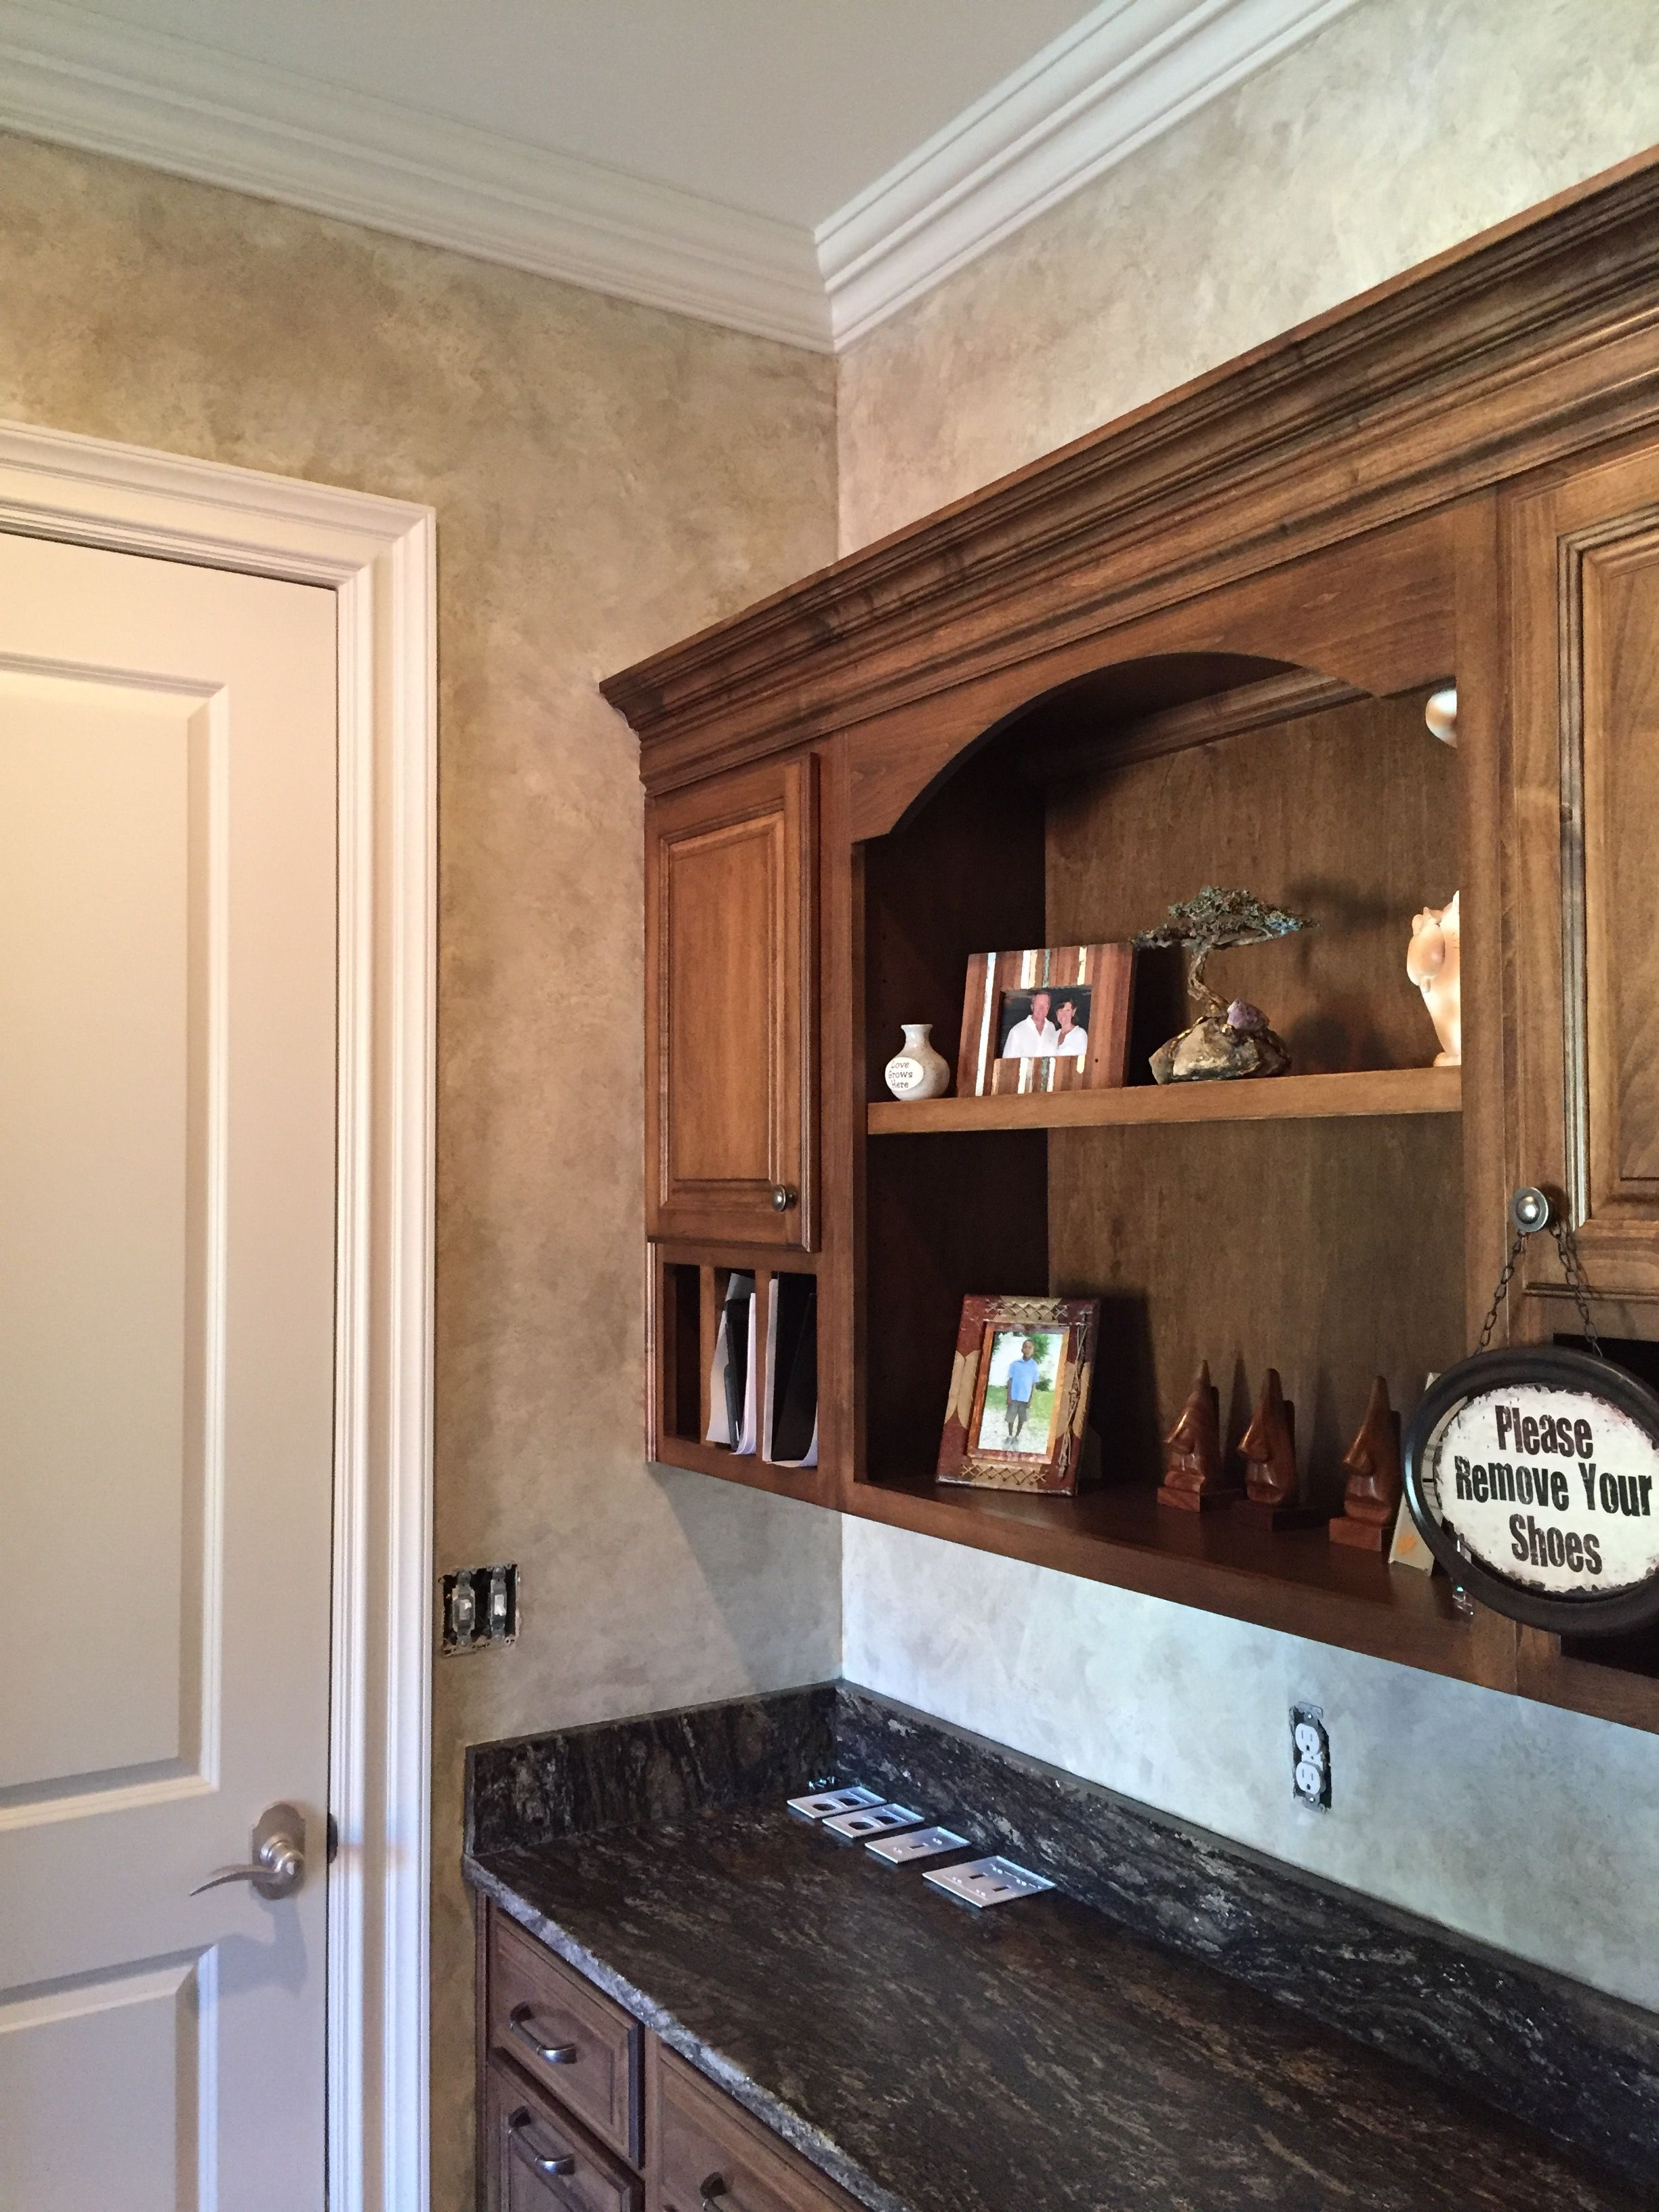 18th Century Parchment Wall Finish In Our Client S Laundry Room Wall Finishes Home Decor Decor